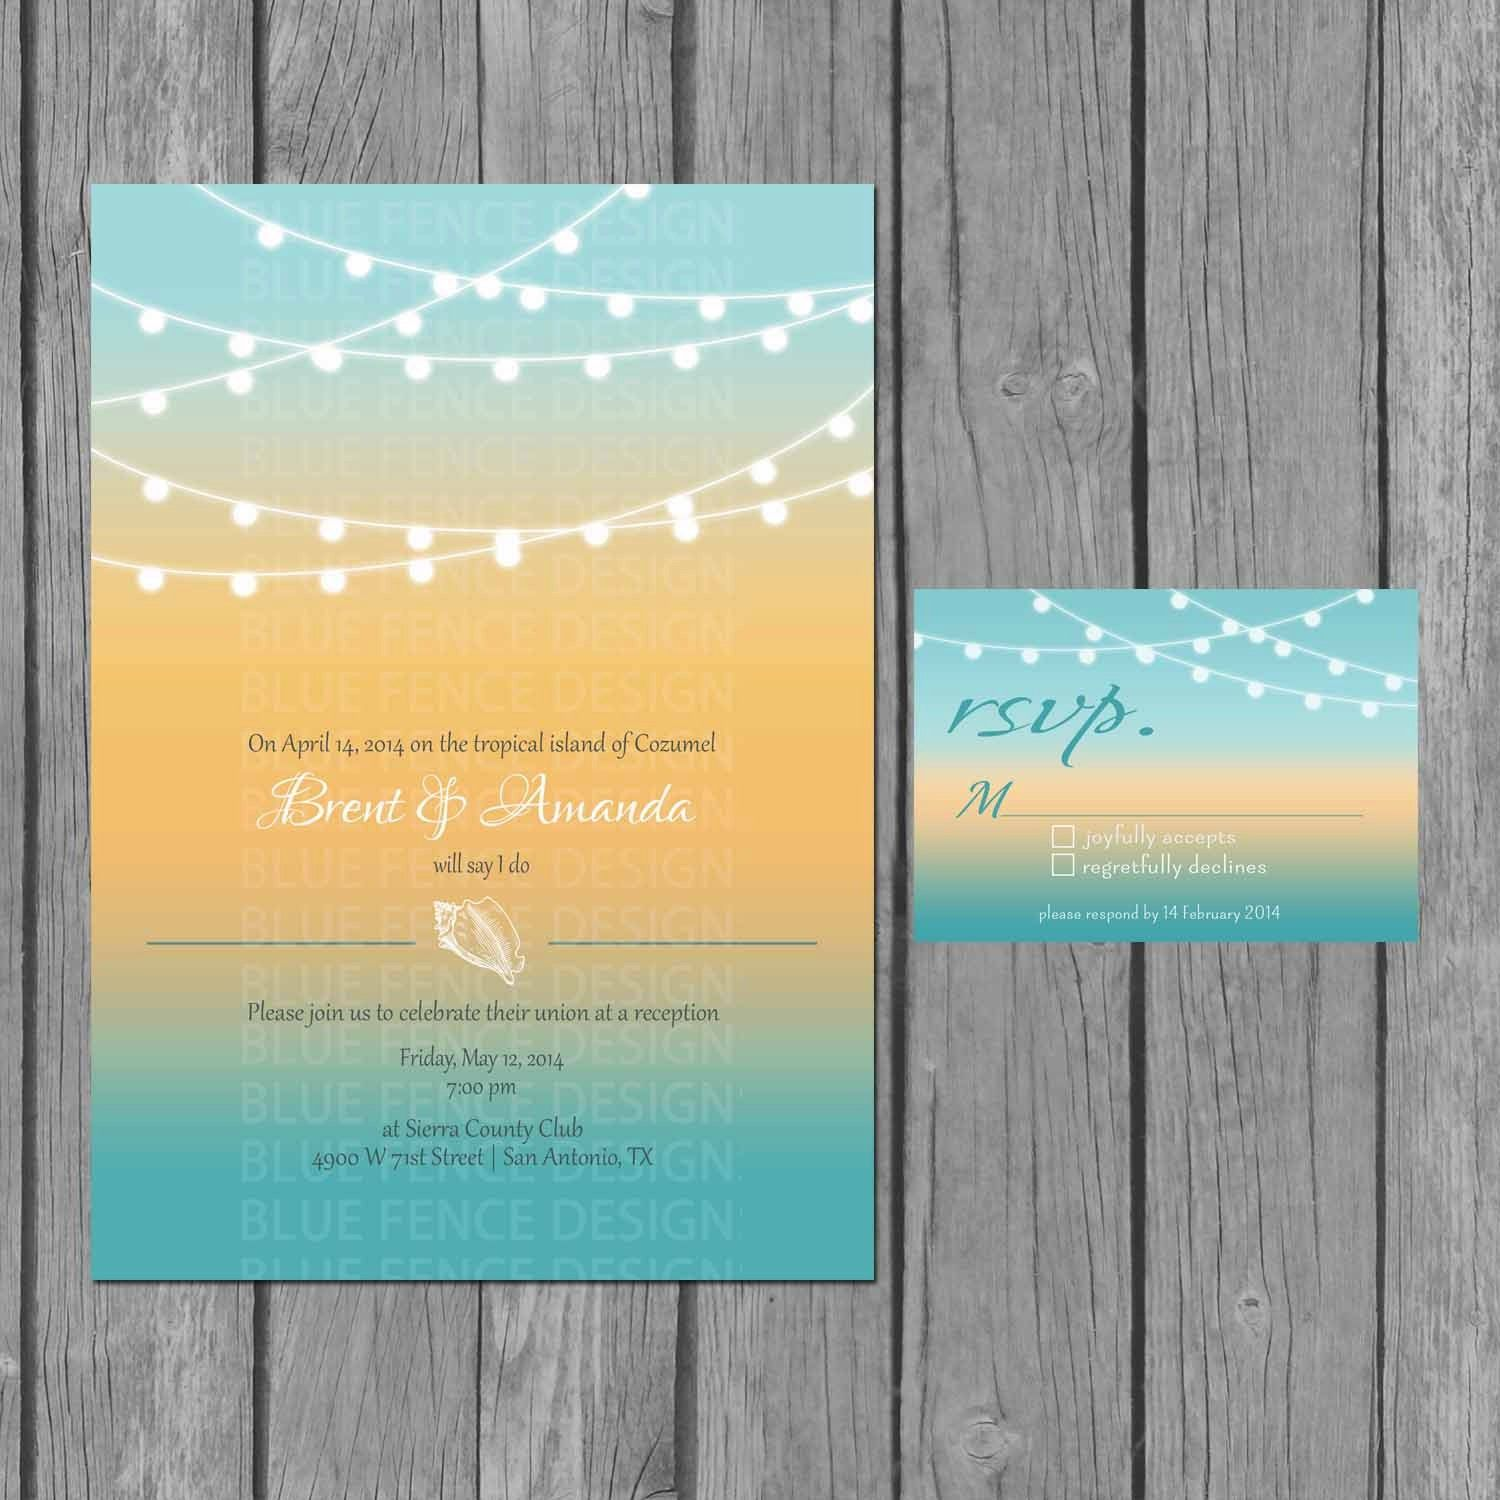 Emejing Ocean Themed Wedding Invitations Ideas Awesome Wedding 1000 Images  About Cat Invites On Pinterest Cenypradufo